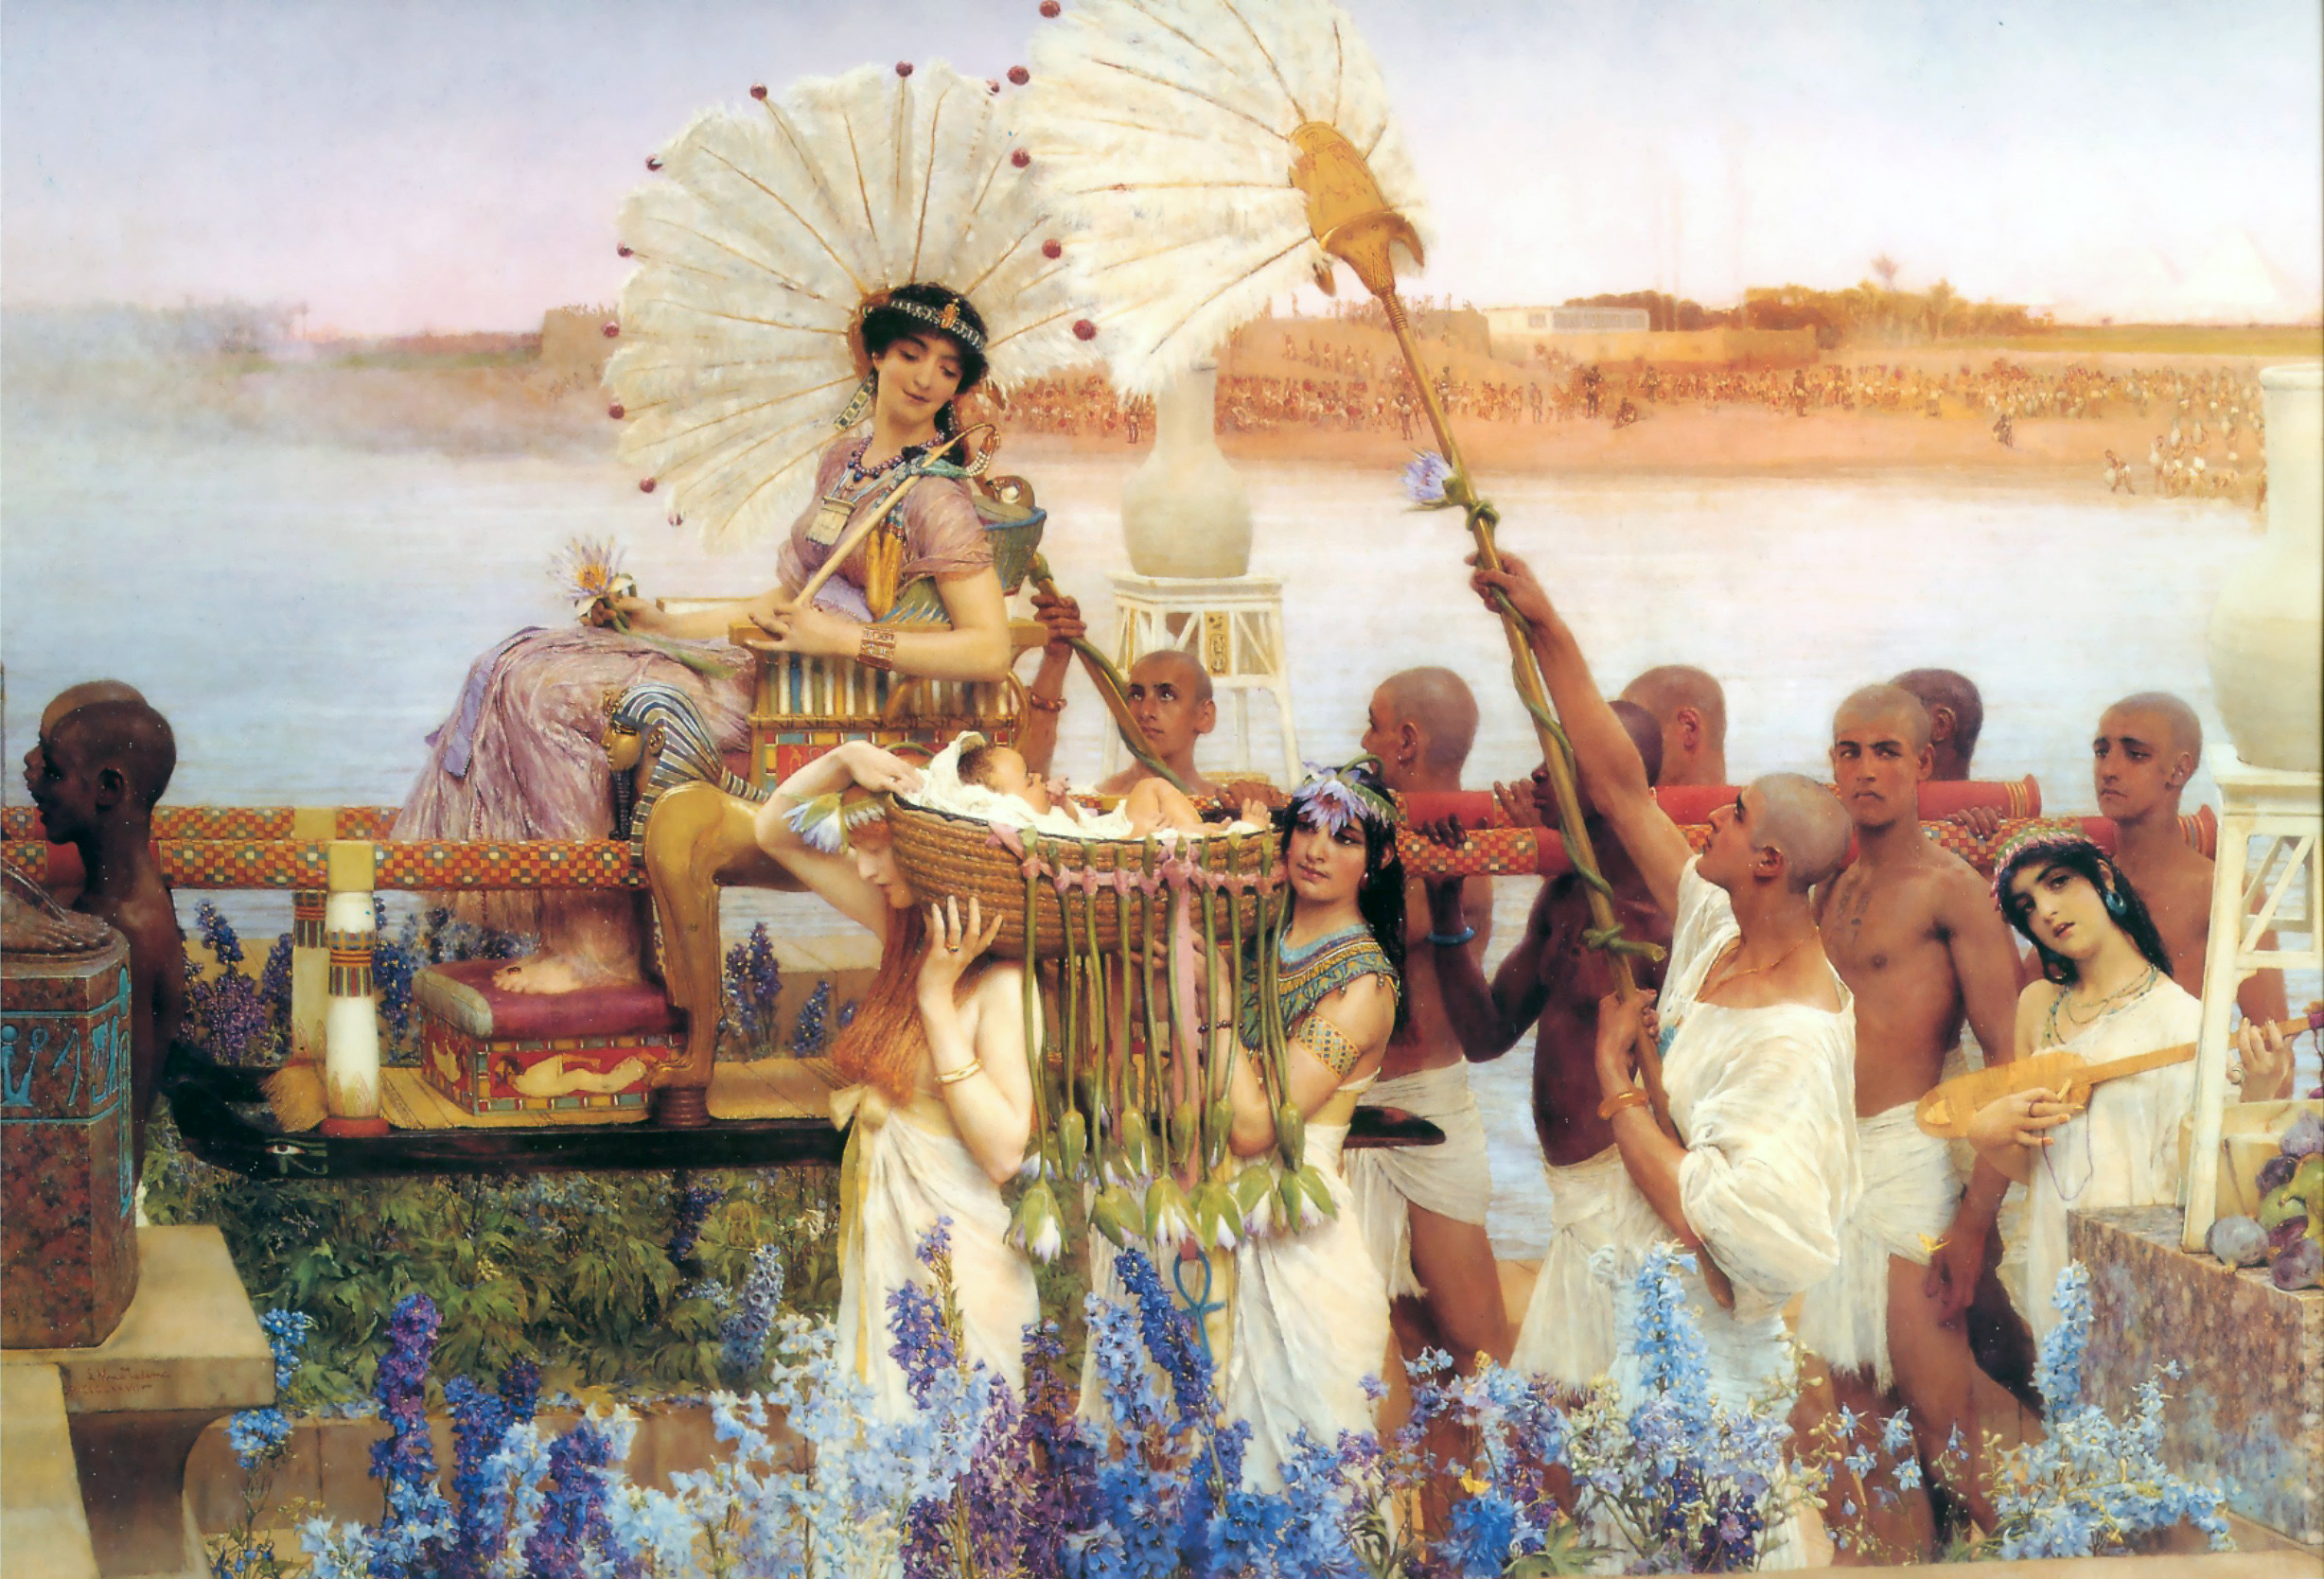 ... -Tadema - The Finding of MOSES.jpg - Wikipedia, the free encyclopedia